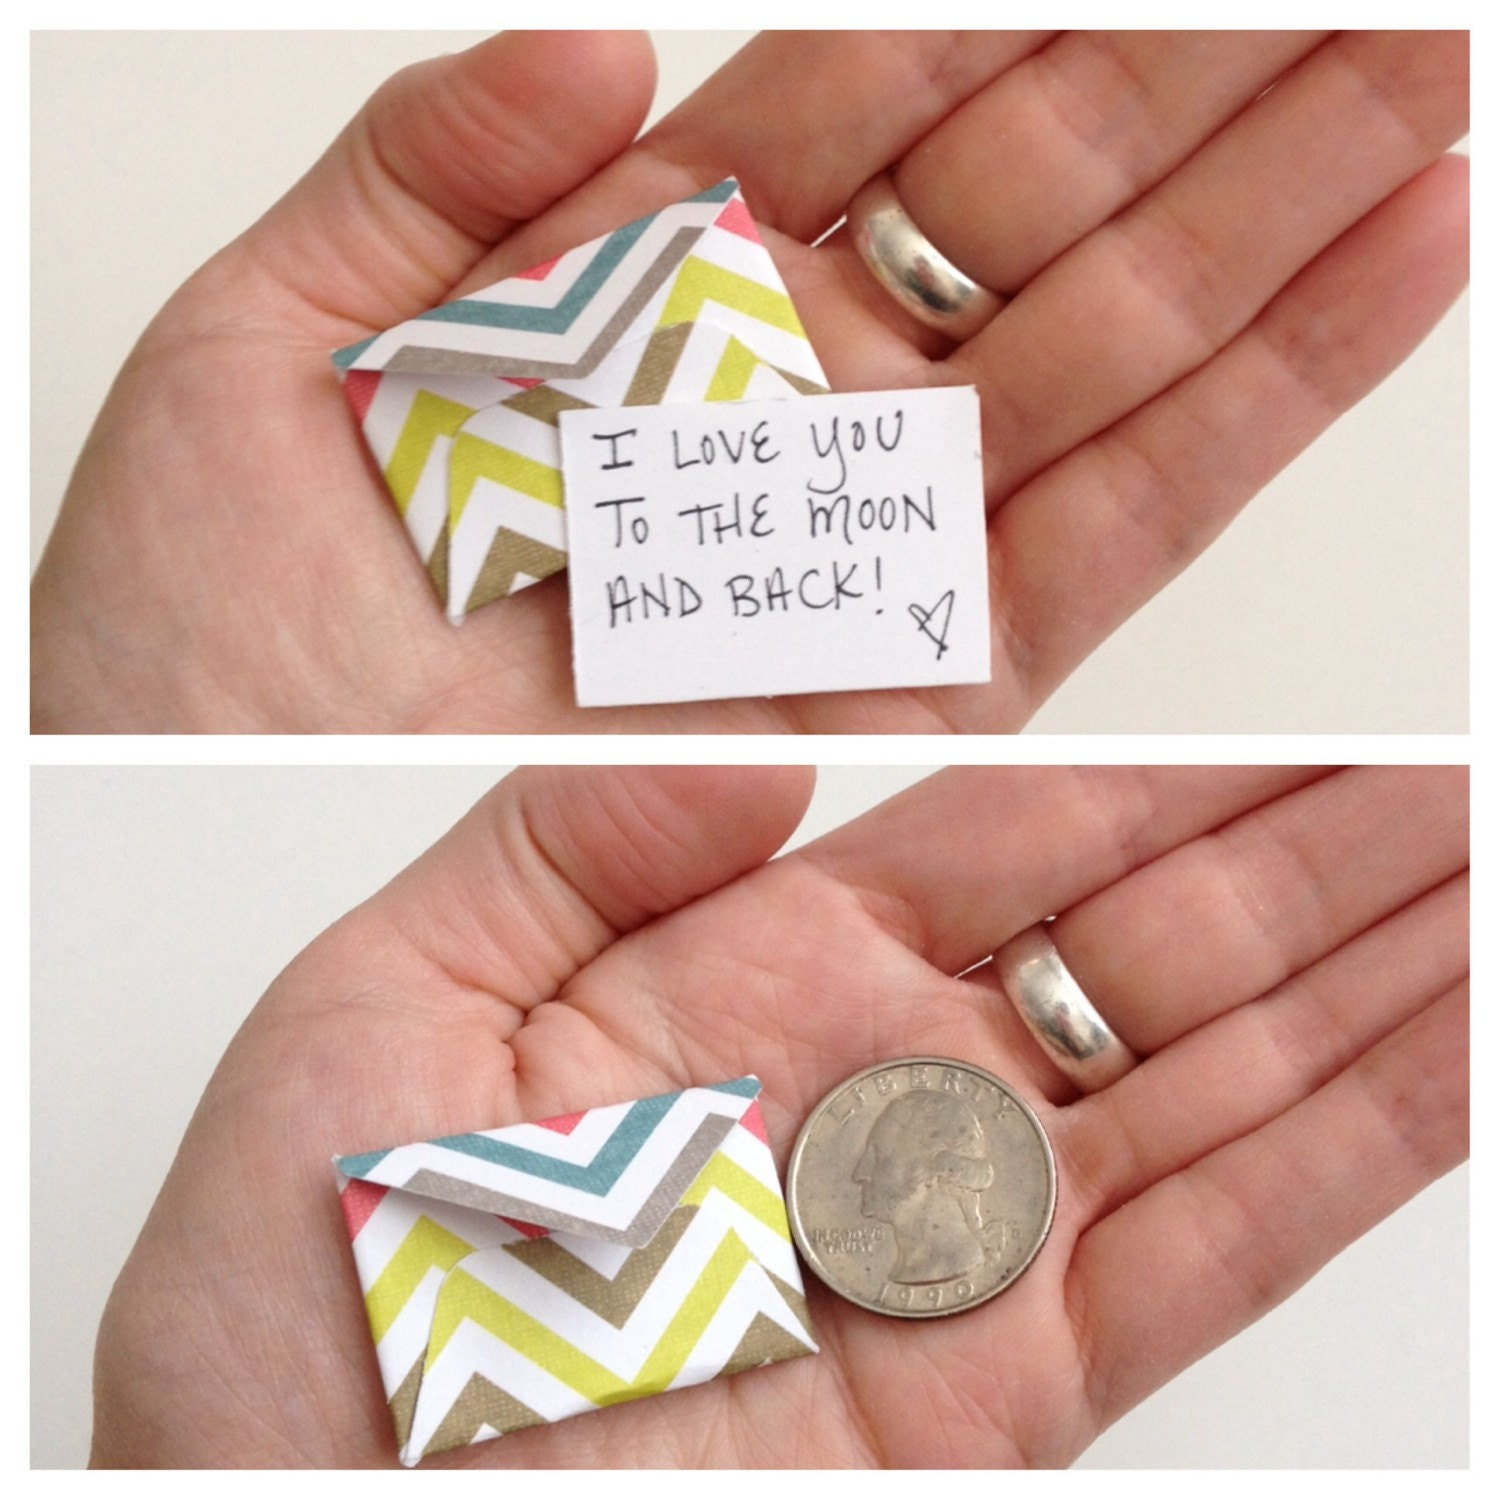 https://www.etsy.com/listing/211292234/set-of-25-50-75-or-100-tiny-envelopes?ref=shop_home_active_4